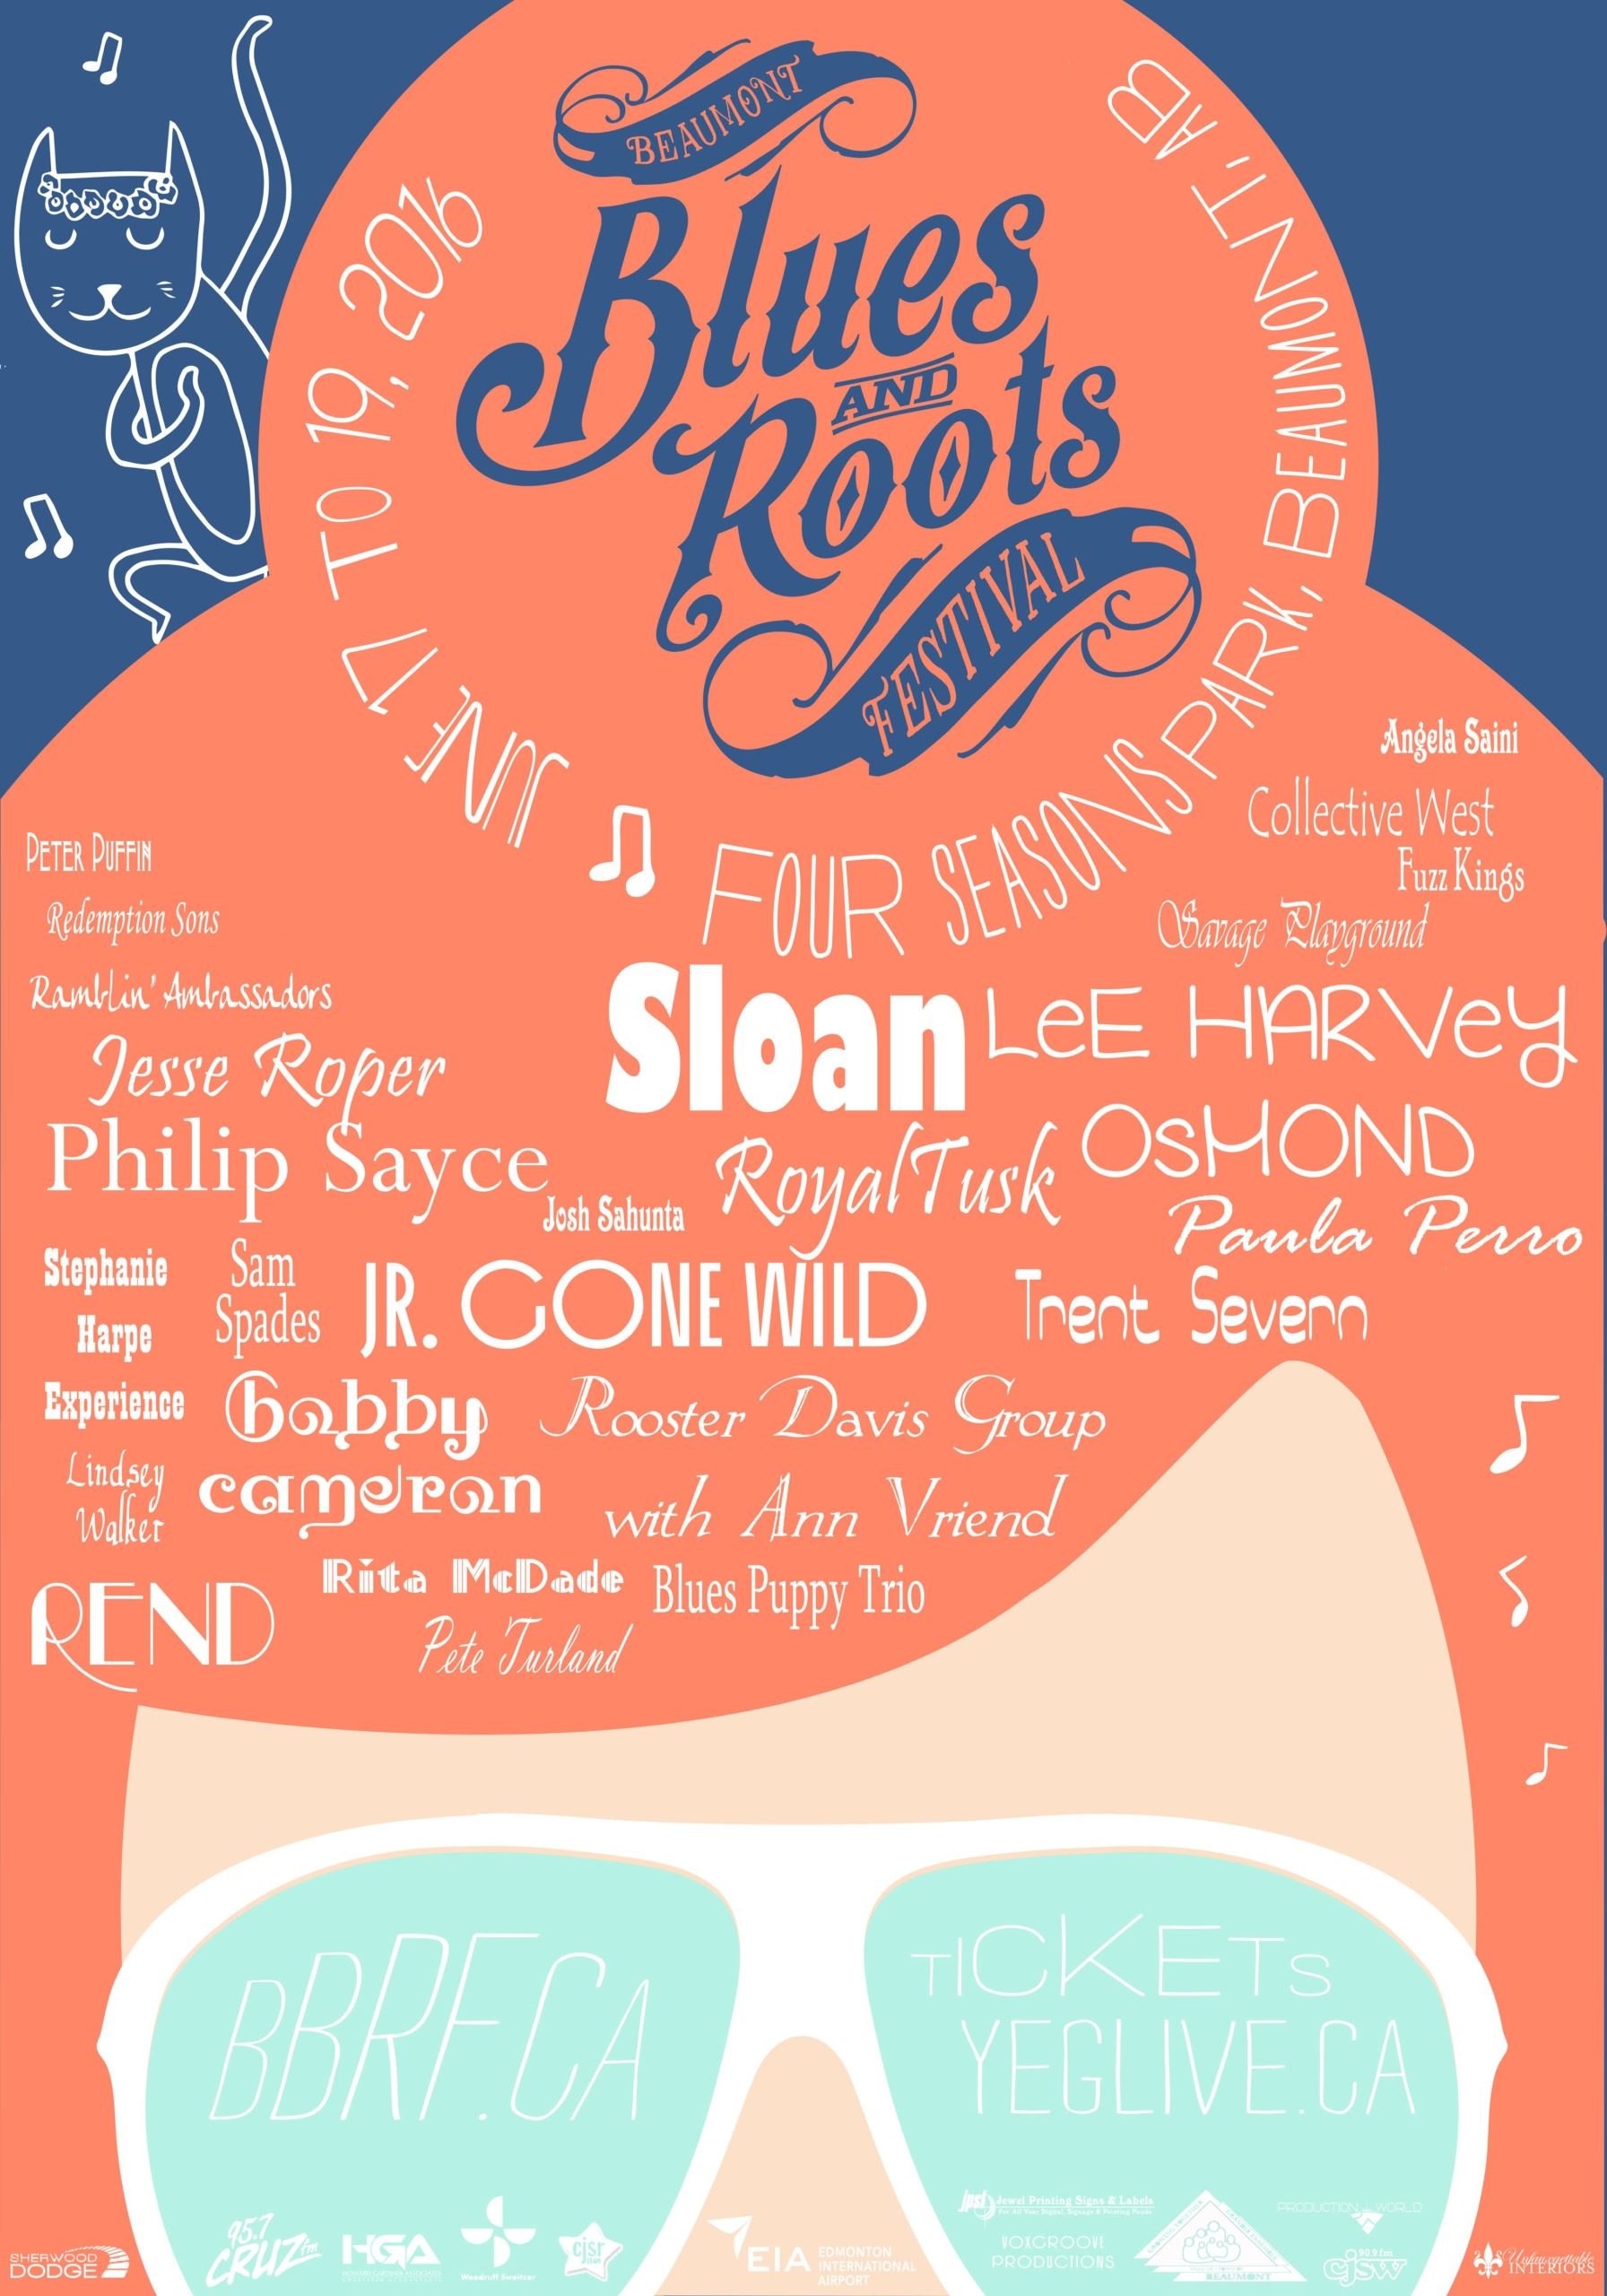 The Beaumont Blues & Roots Festival poster 2016 glasses